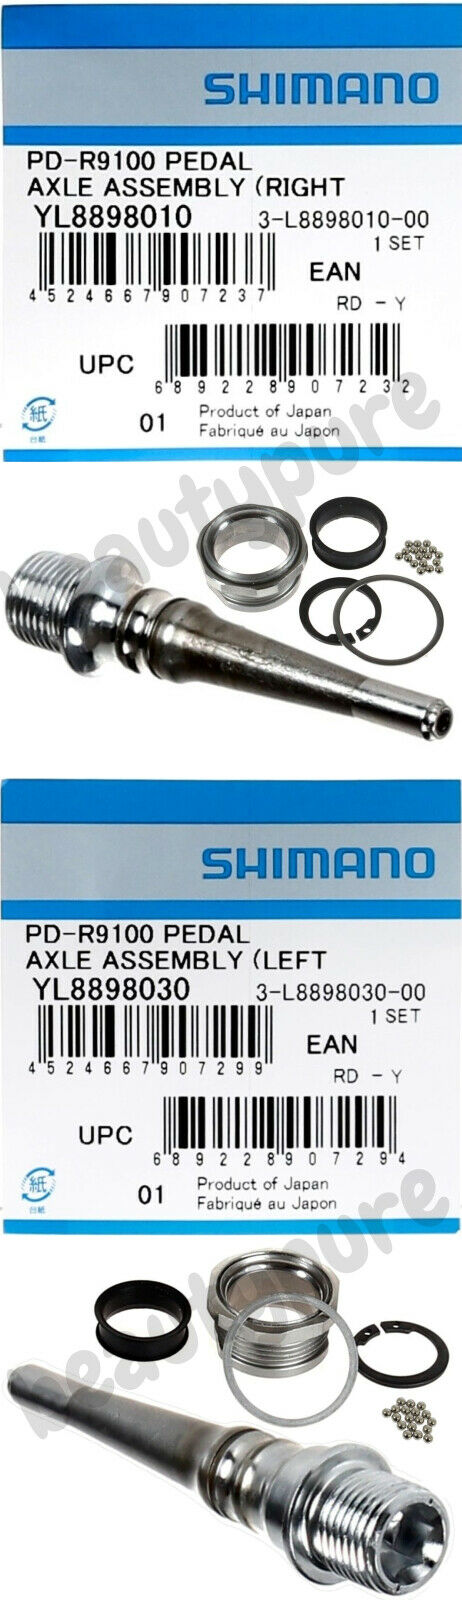 1 Pair Shimano Dura Ace PD-R9100 Pedal Axle Assembly Left    Right NIB  wholesale cheap